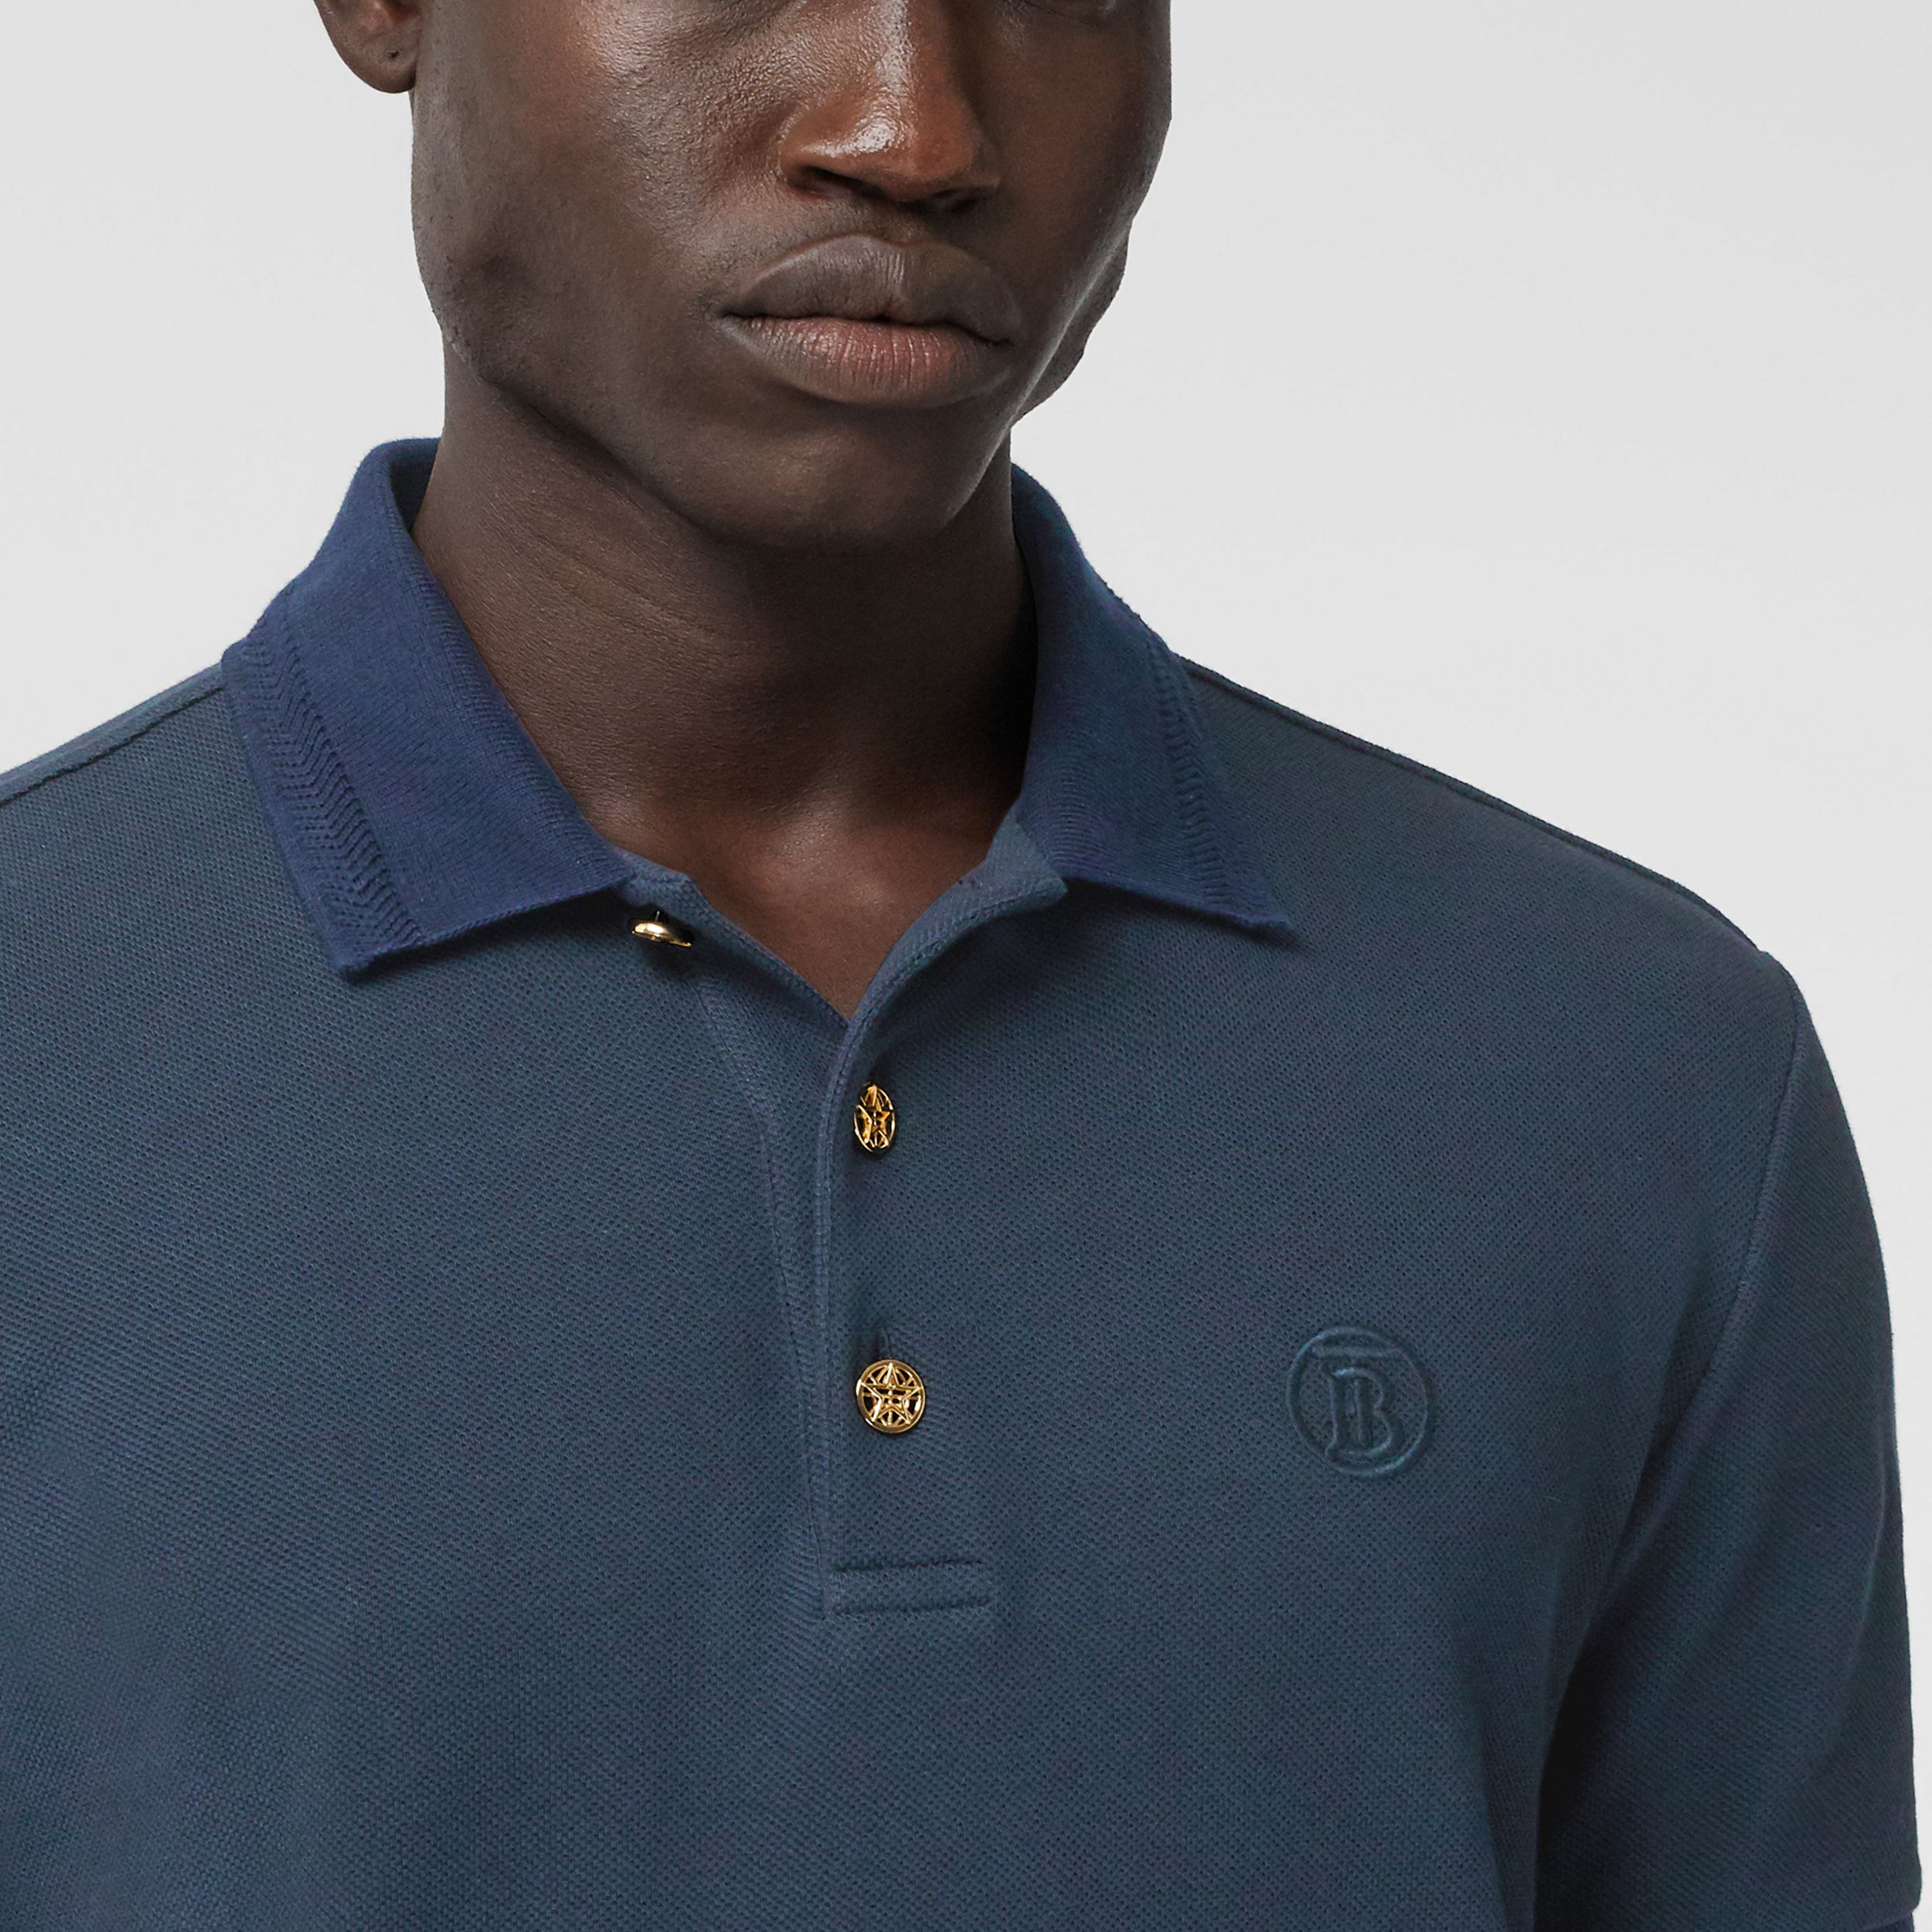 Button Detail Cotton Piqué Polo Shirt in Navy - Men | Burberry - 2